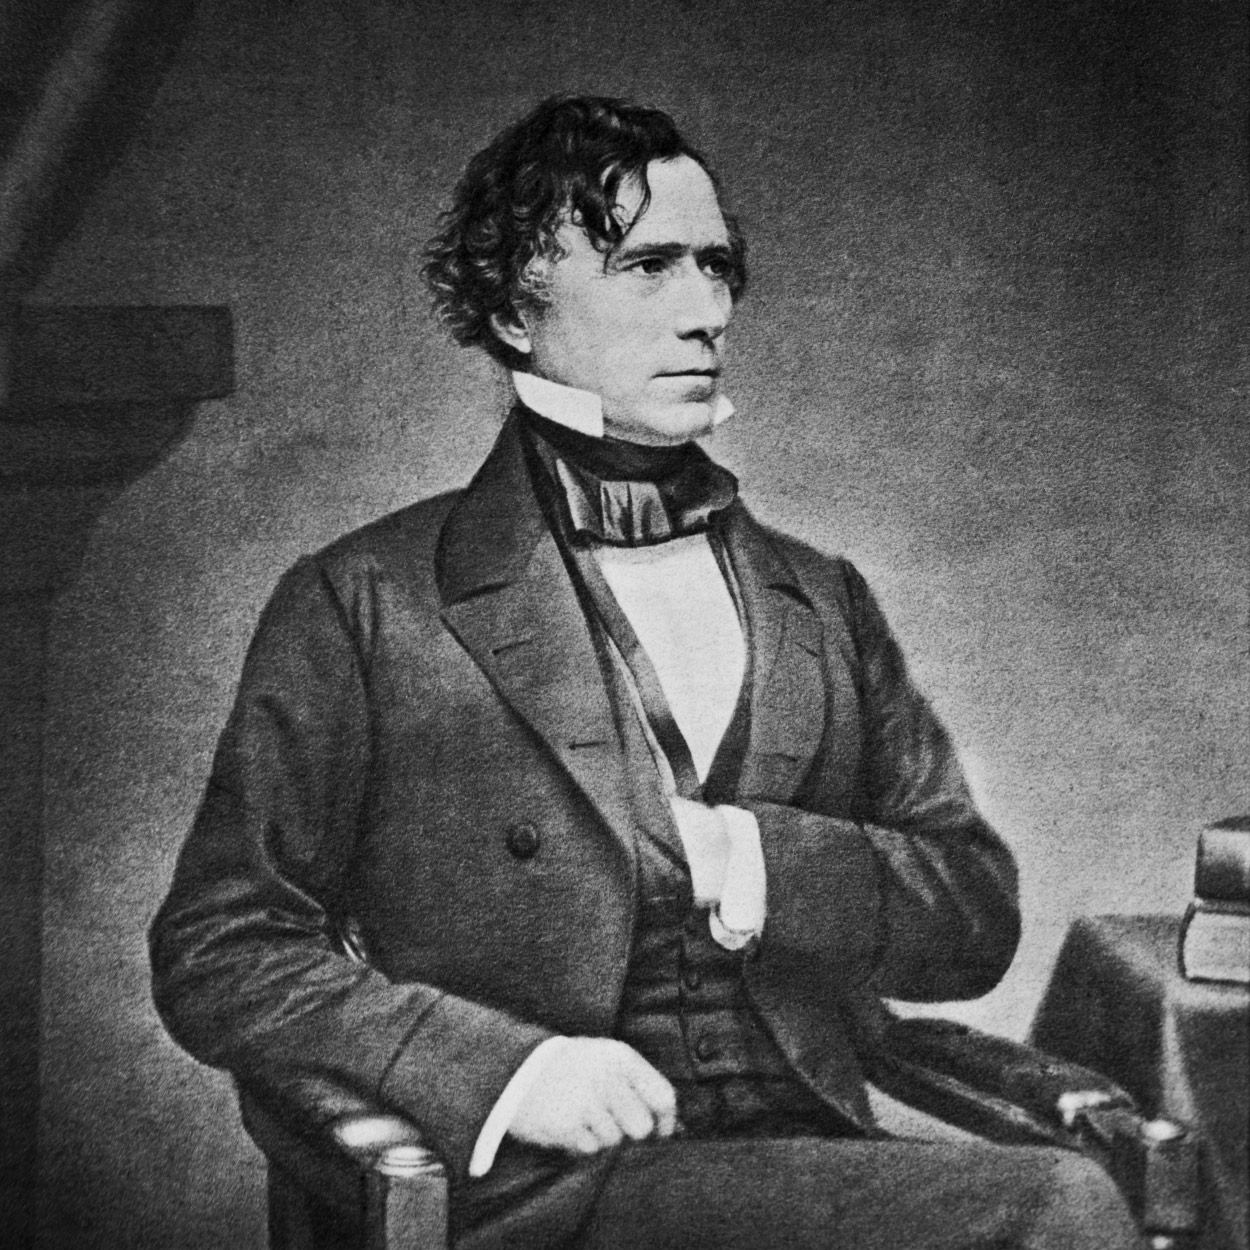 Portrait of Franklin Pierce, the 14th President of the United States